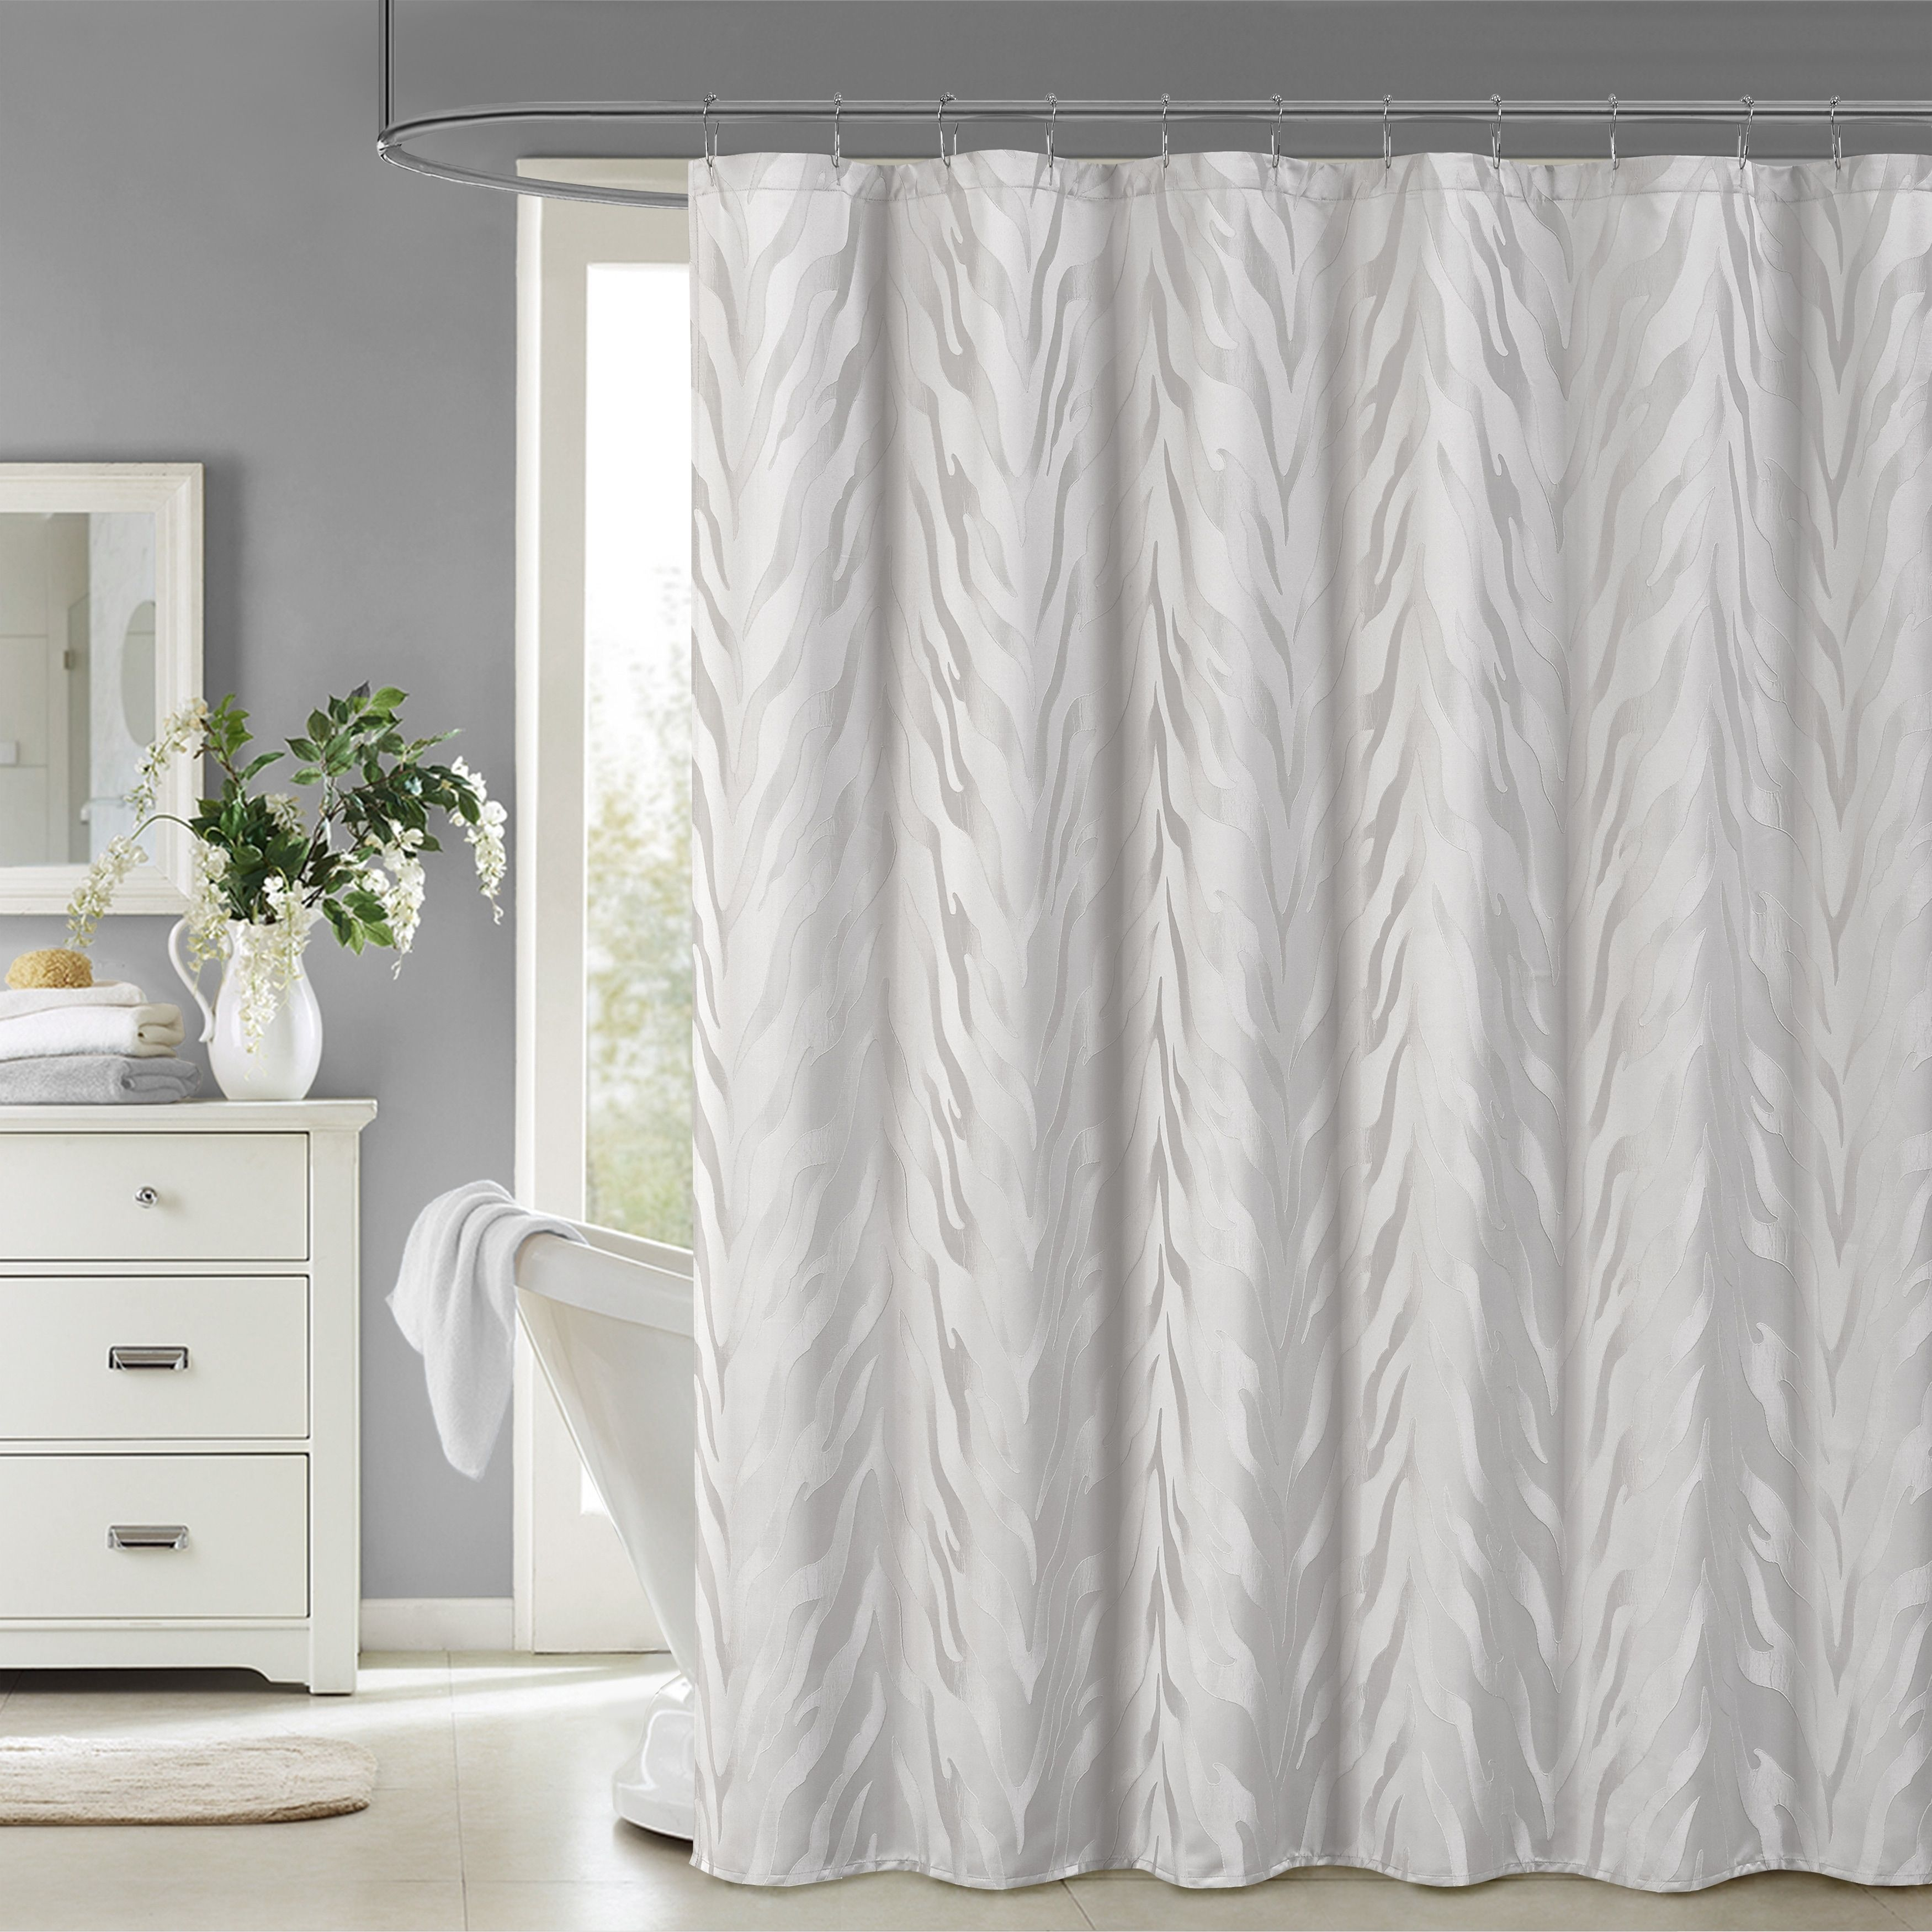 Five Queens Court Kendall Woven Jacquard Shower Curtain 72 X 84 Silver Curtains Shower Serene Bathroom